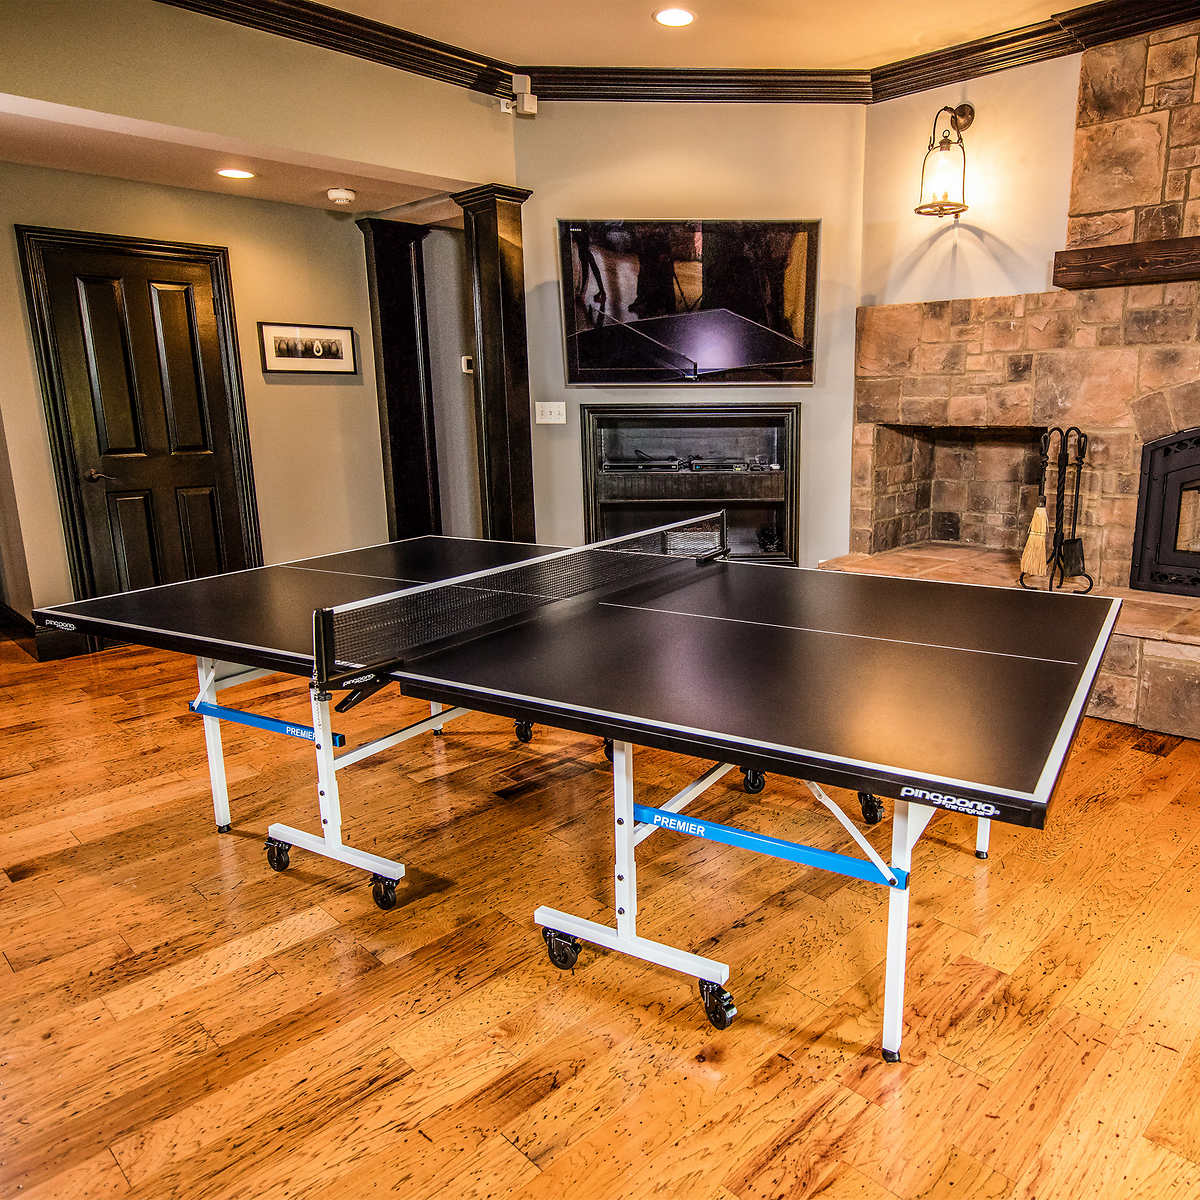 Ping Pong Premier Table Tennis Table